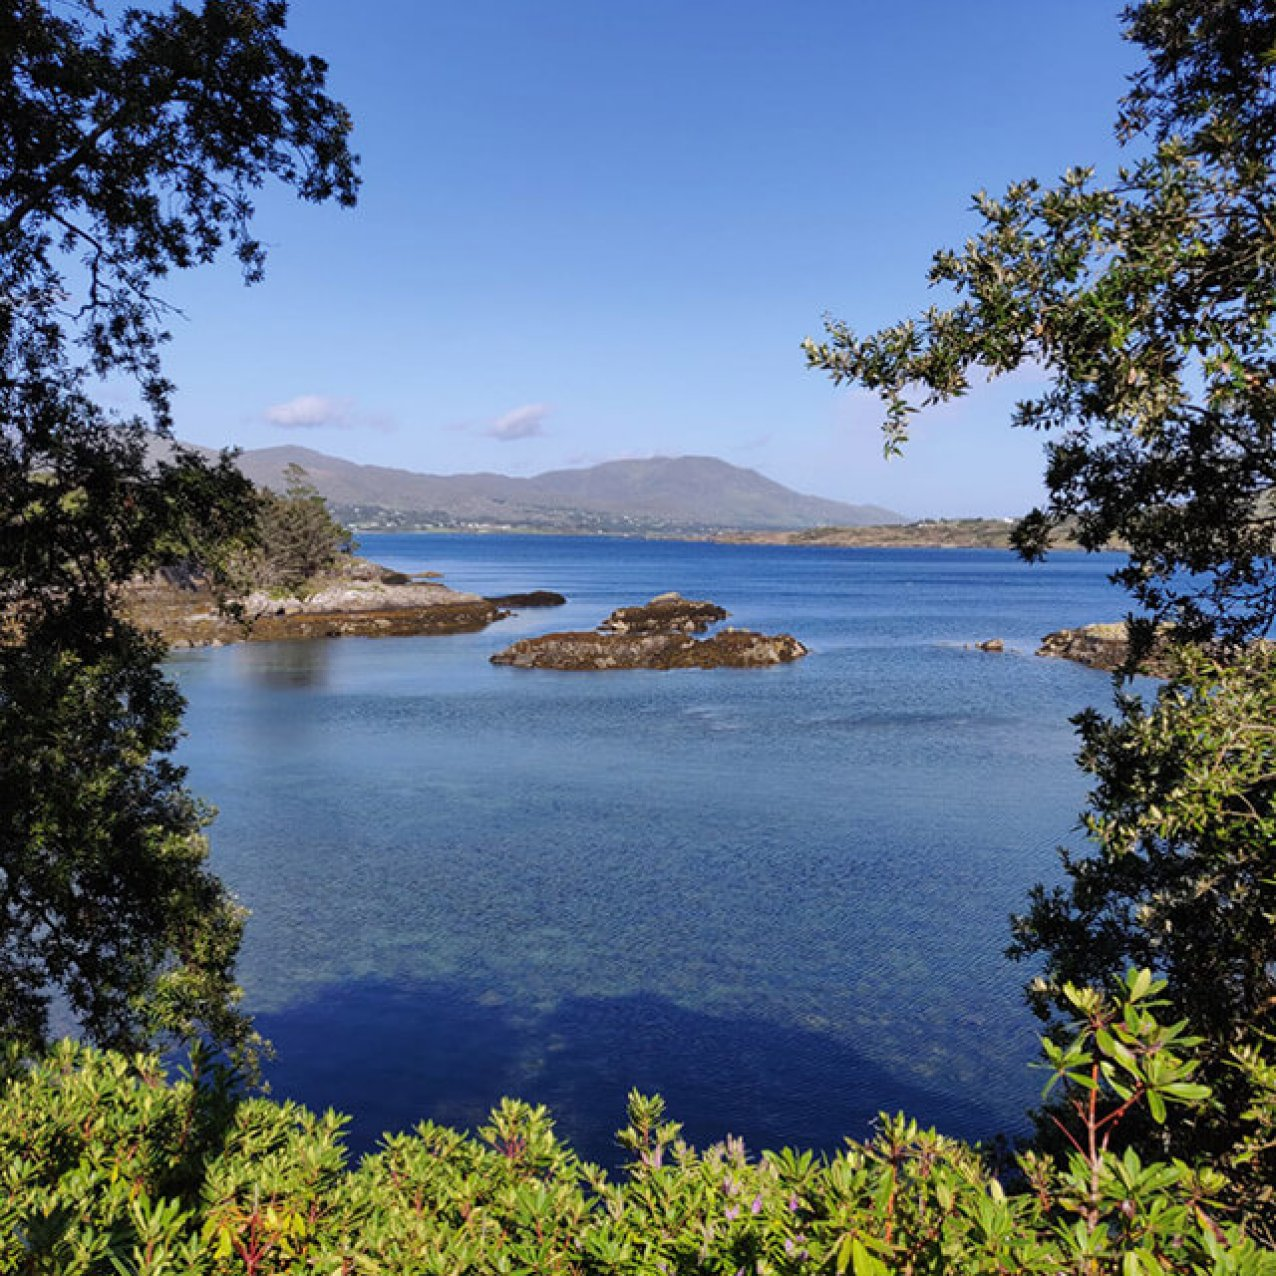 Scenic ocean views from Bullig Bay on the Beara Peninsula